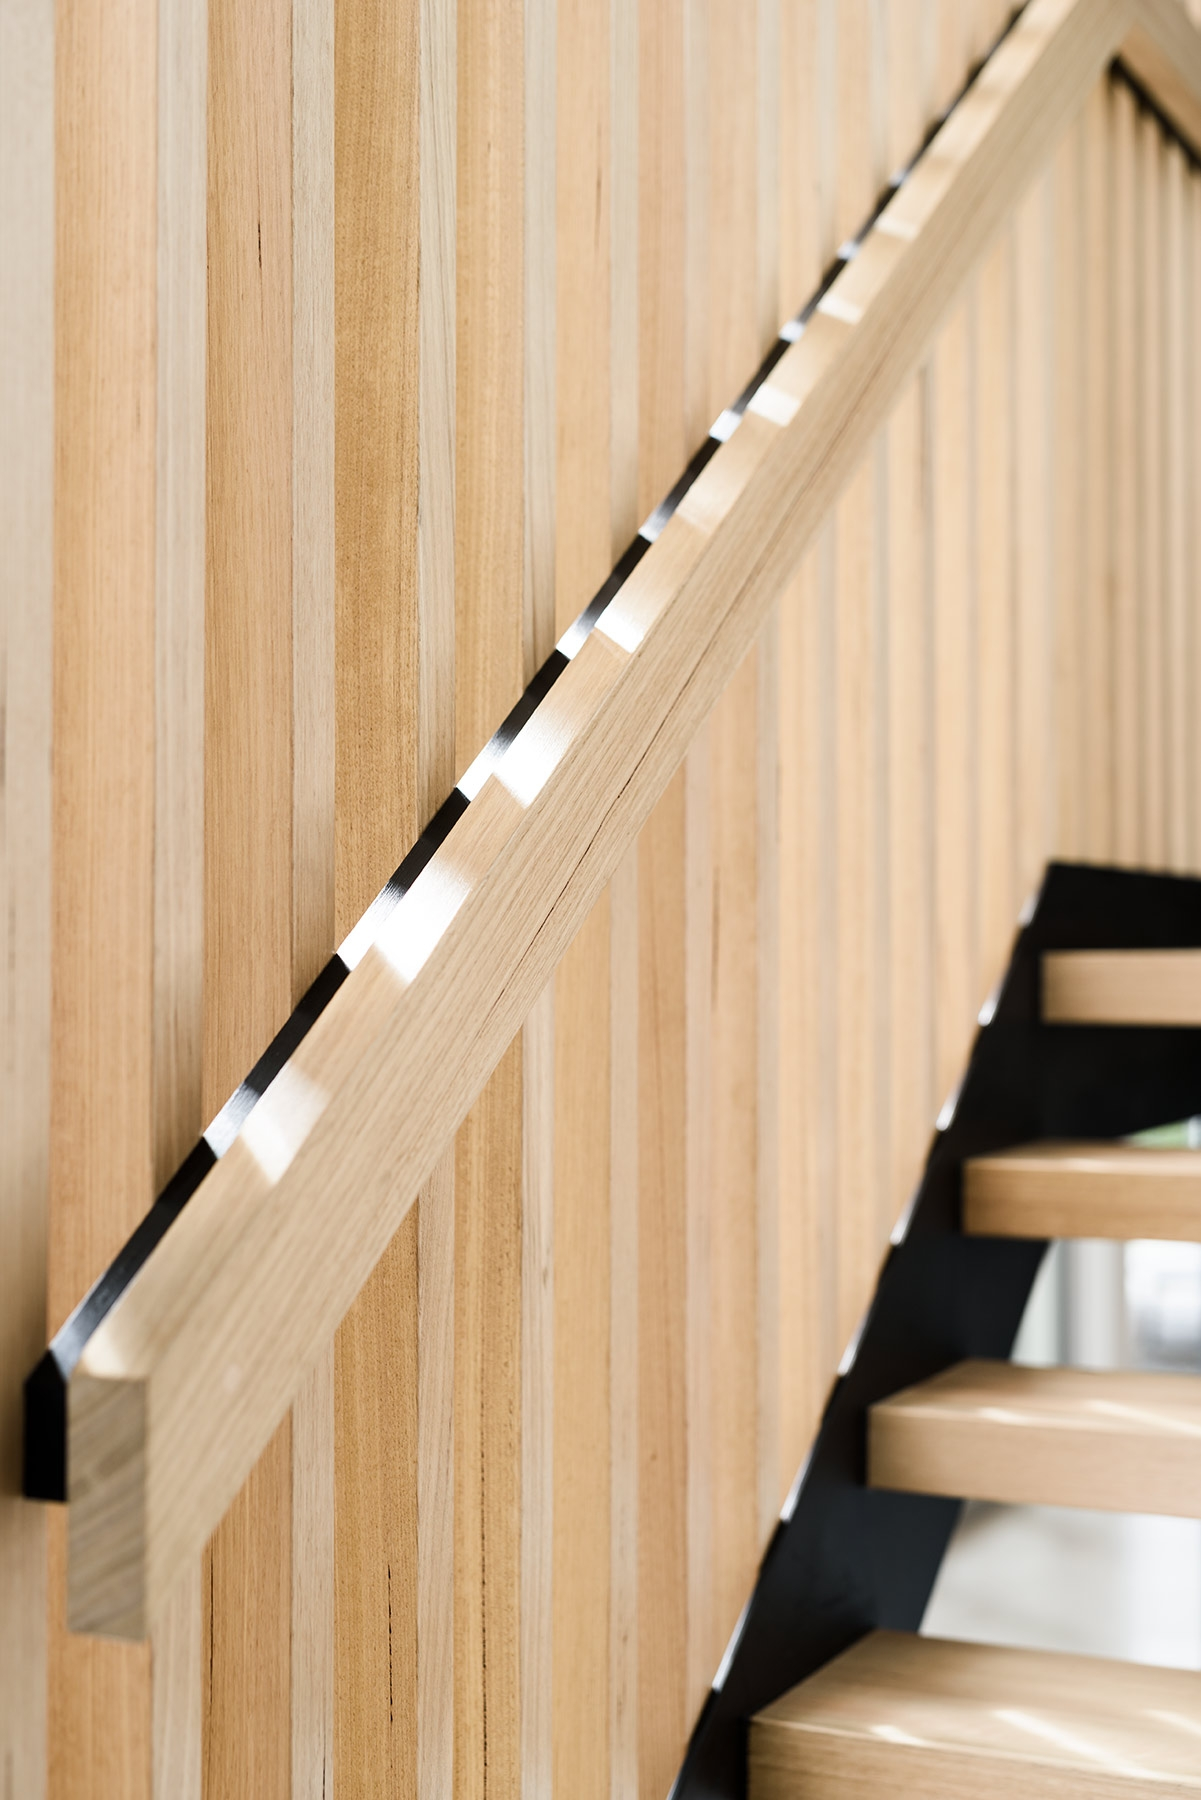 Stair Treads Victorian Ash Balustrade Feature With Regard To Contemporary Stair Treads (Image 13 of 15)